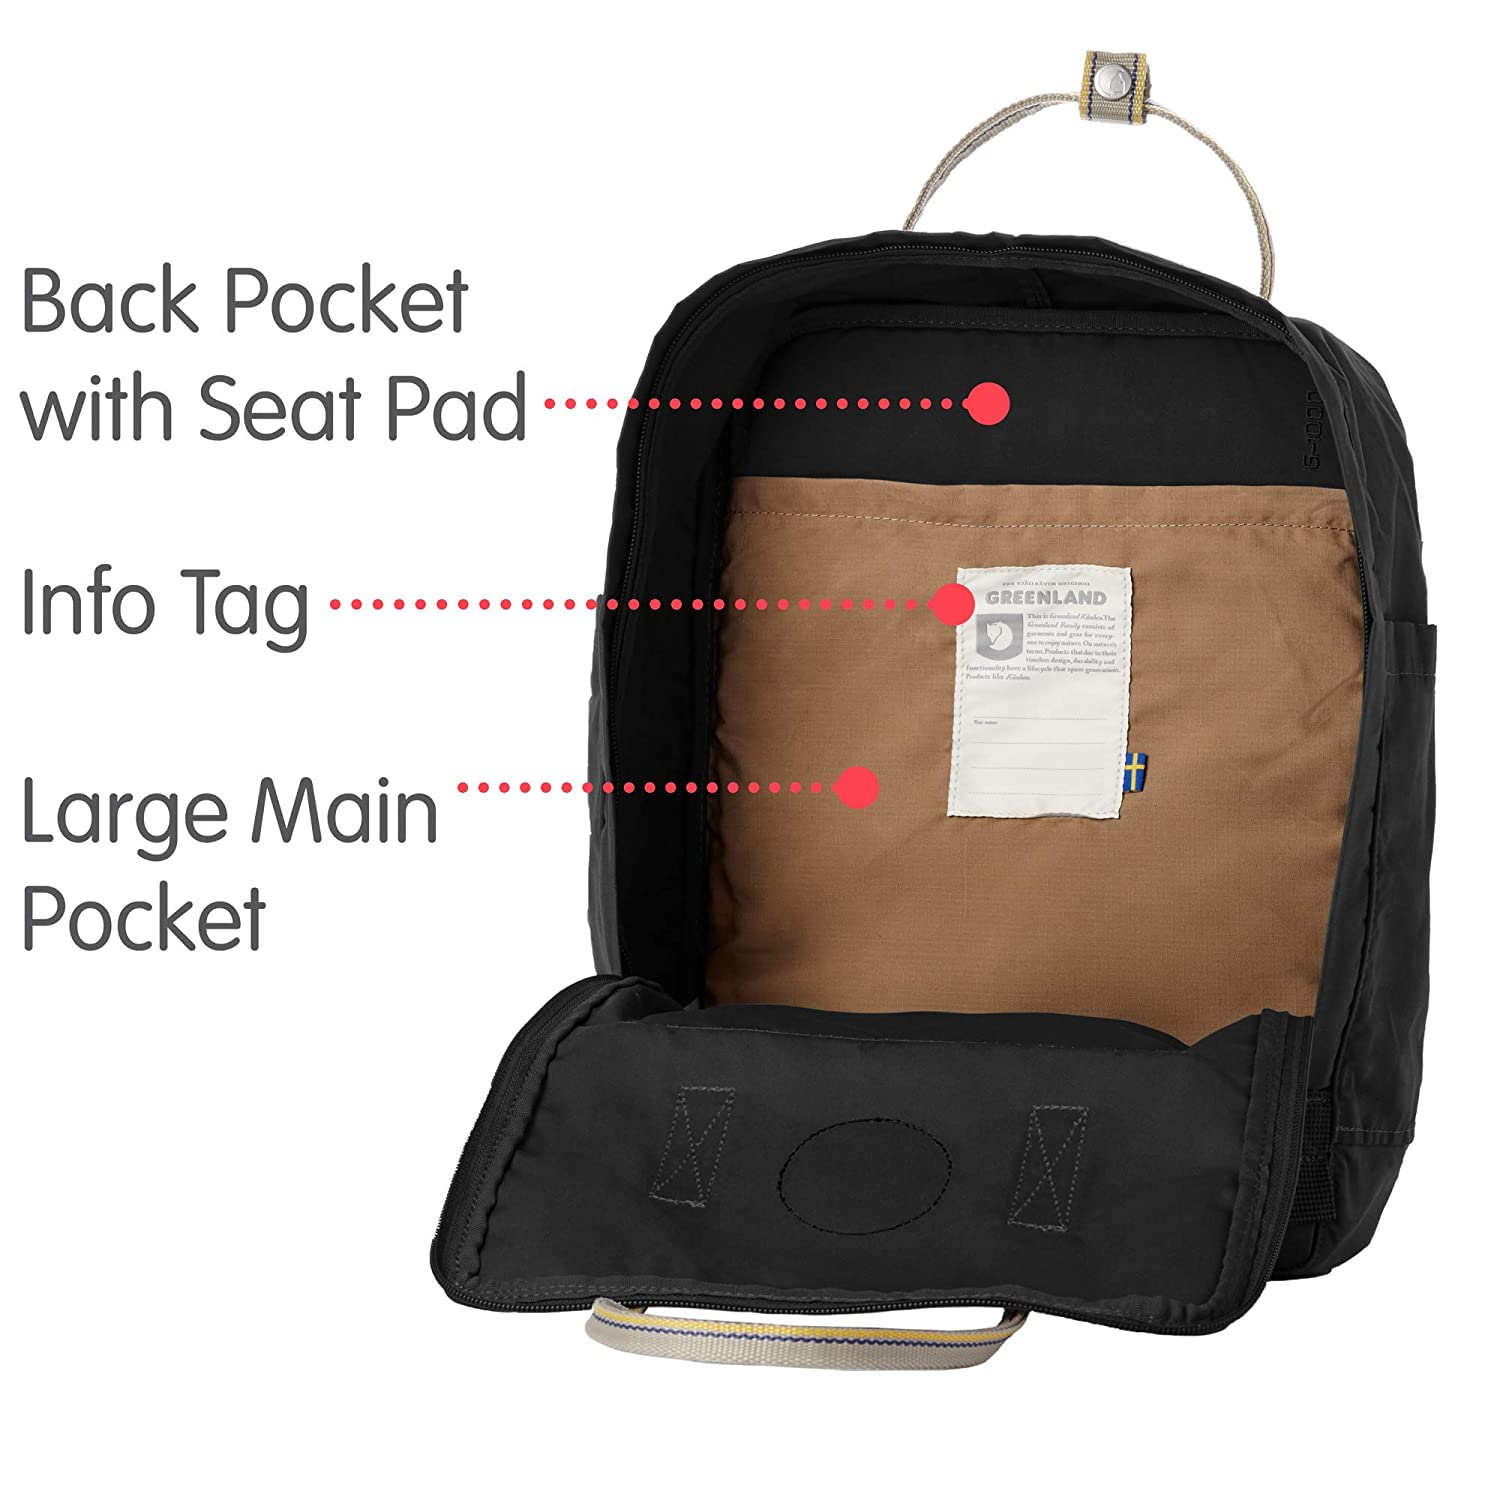 ea3518706 Amazon.com: Fjallraven - Kanken Greenland Backpack for Everyday, Black/Greenland  Backpack for Everyday Pattern: Clothing